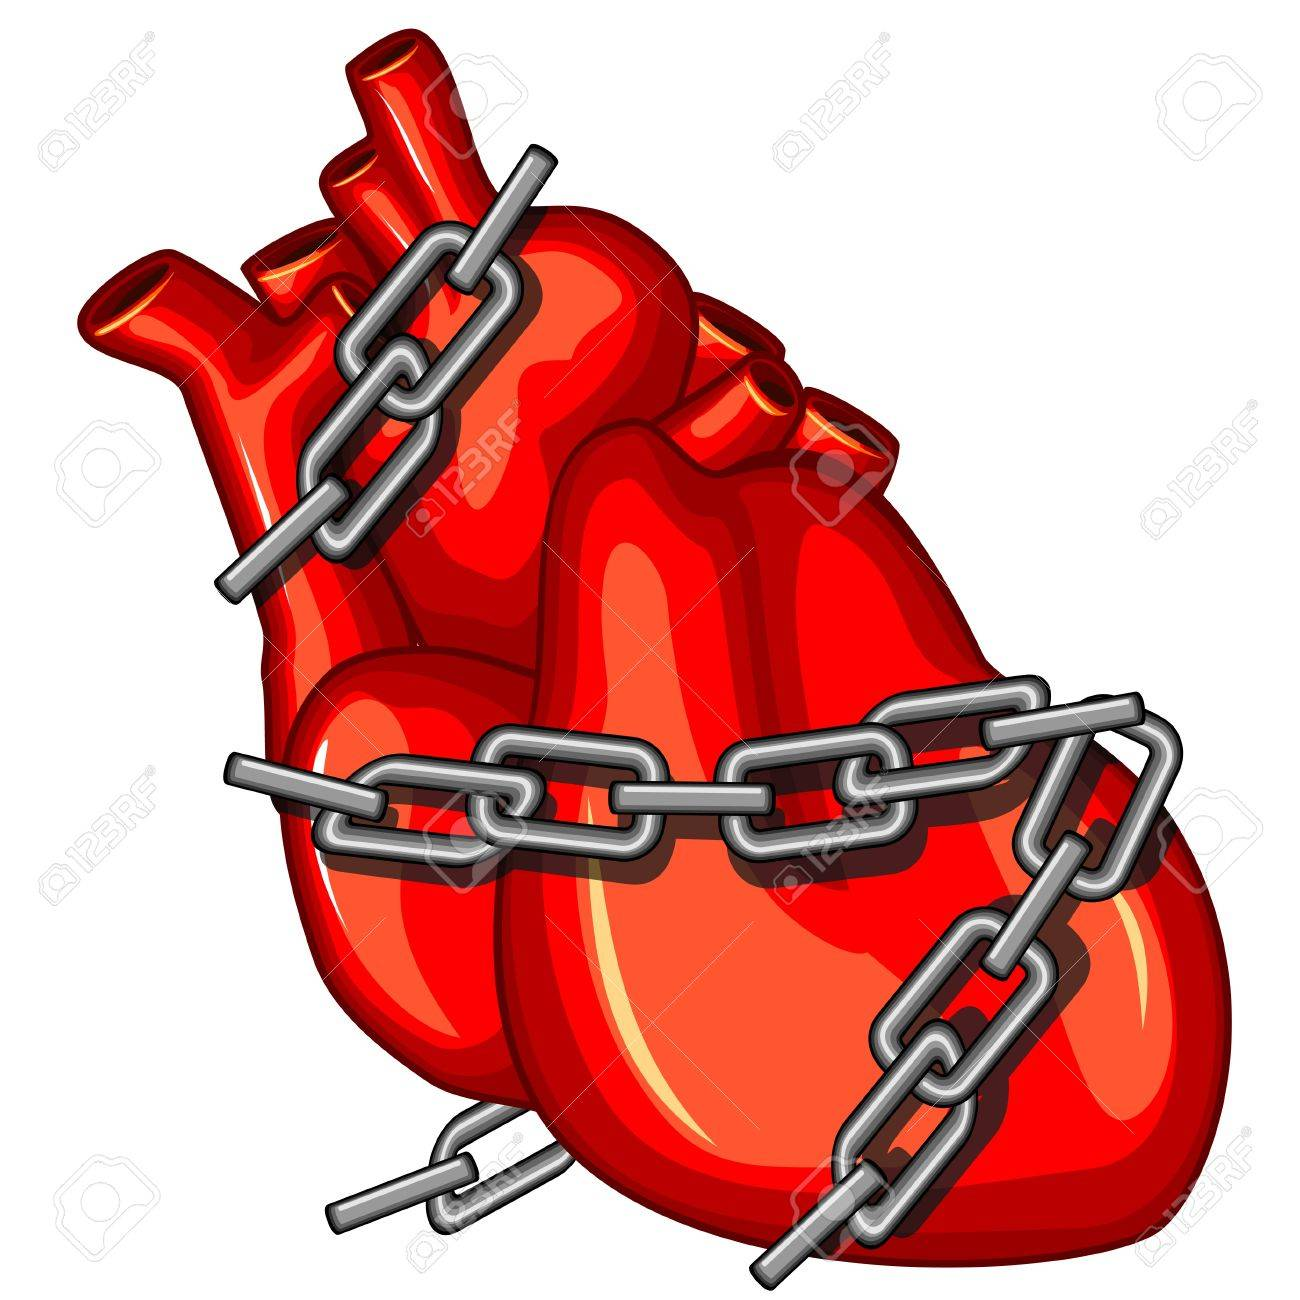 Red human heart with chains as concept of cardiac disease Stock Vector - 13286031